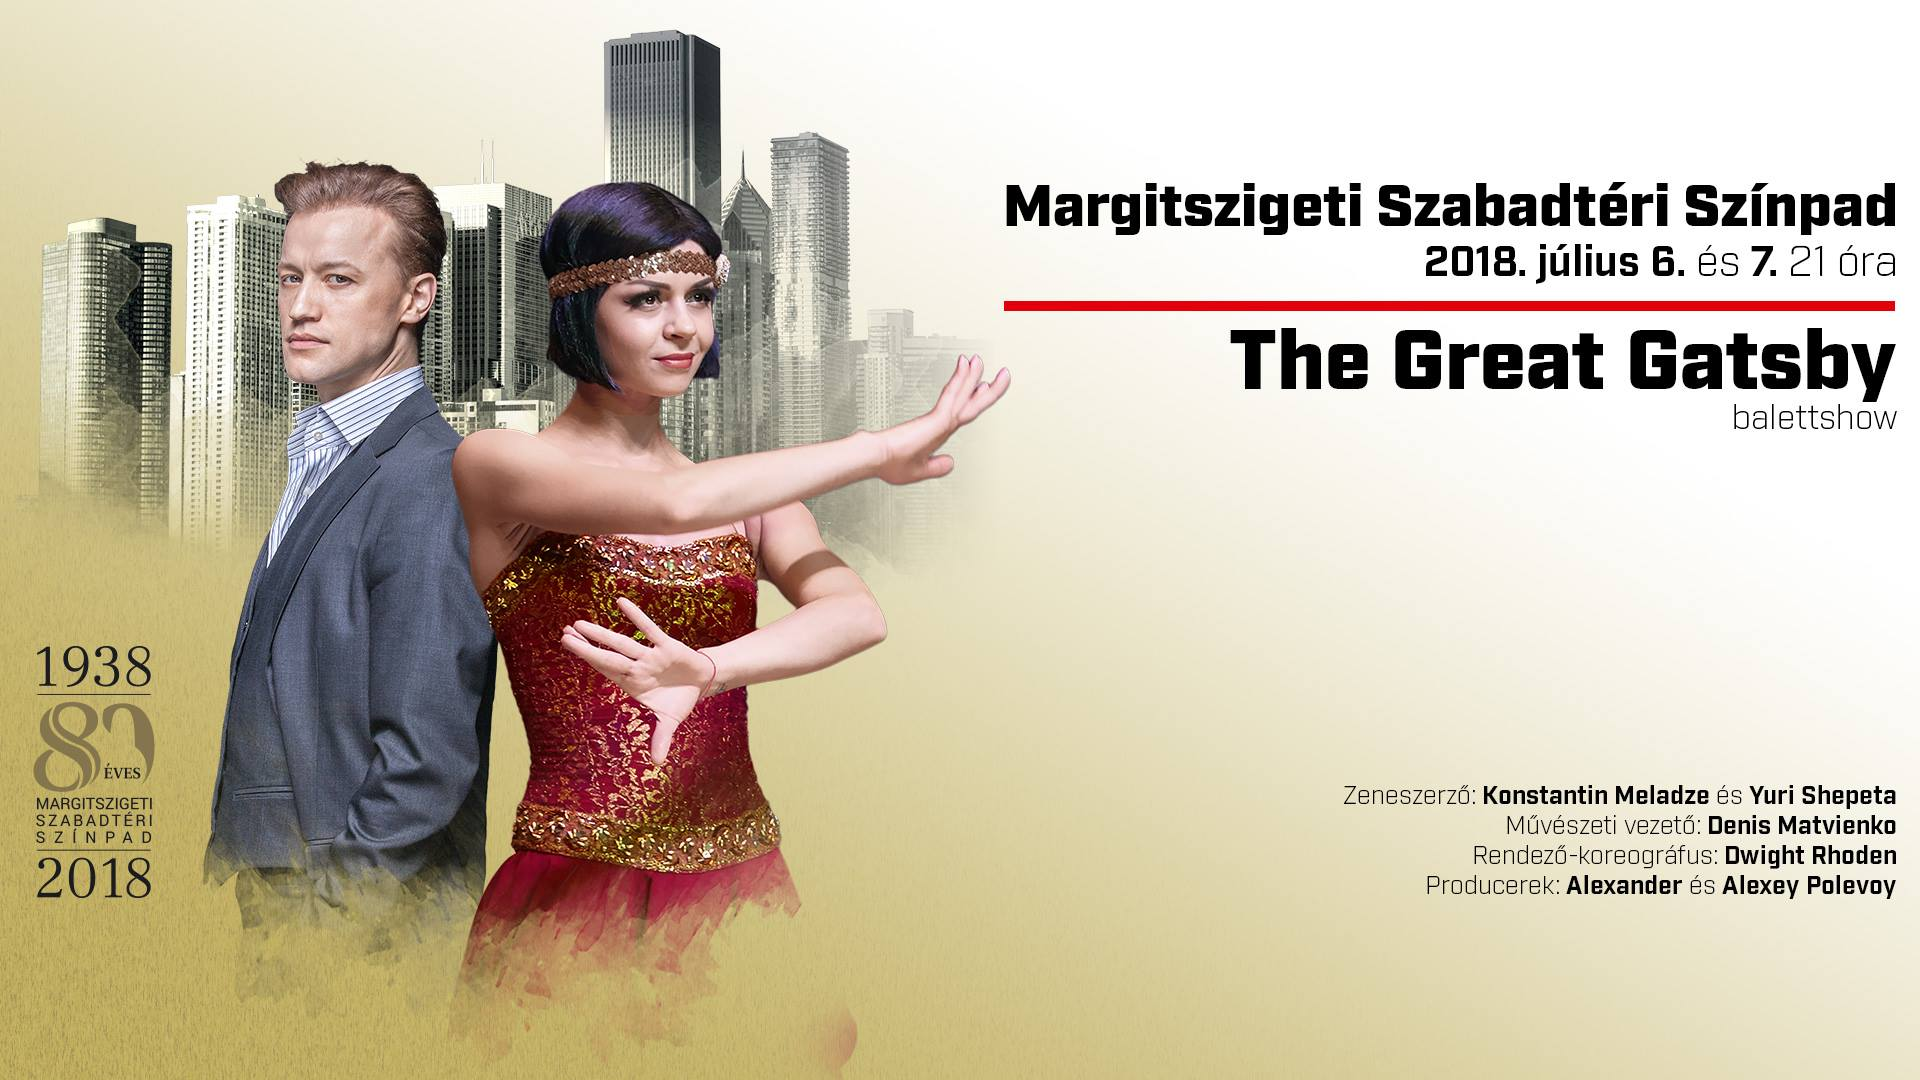 The Great Gatsby - balettshow